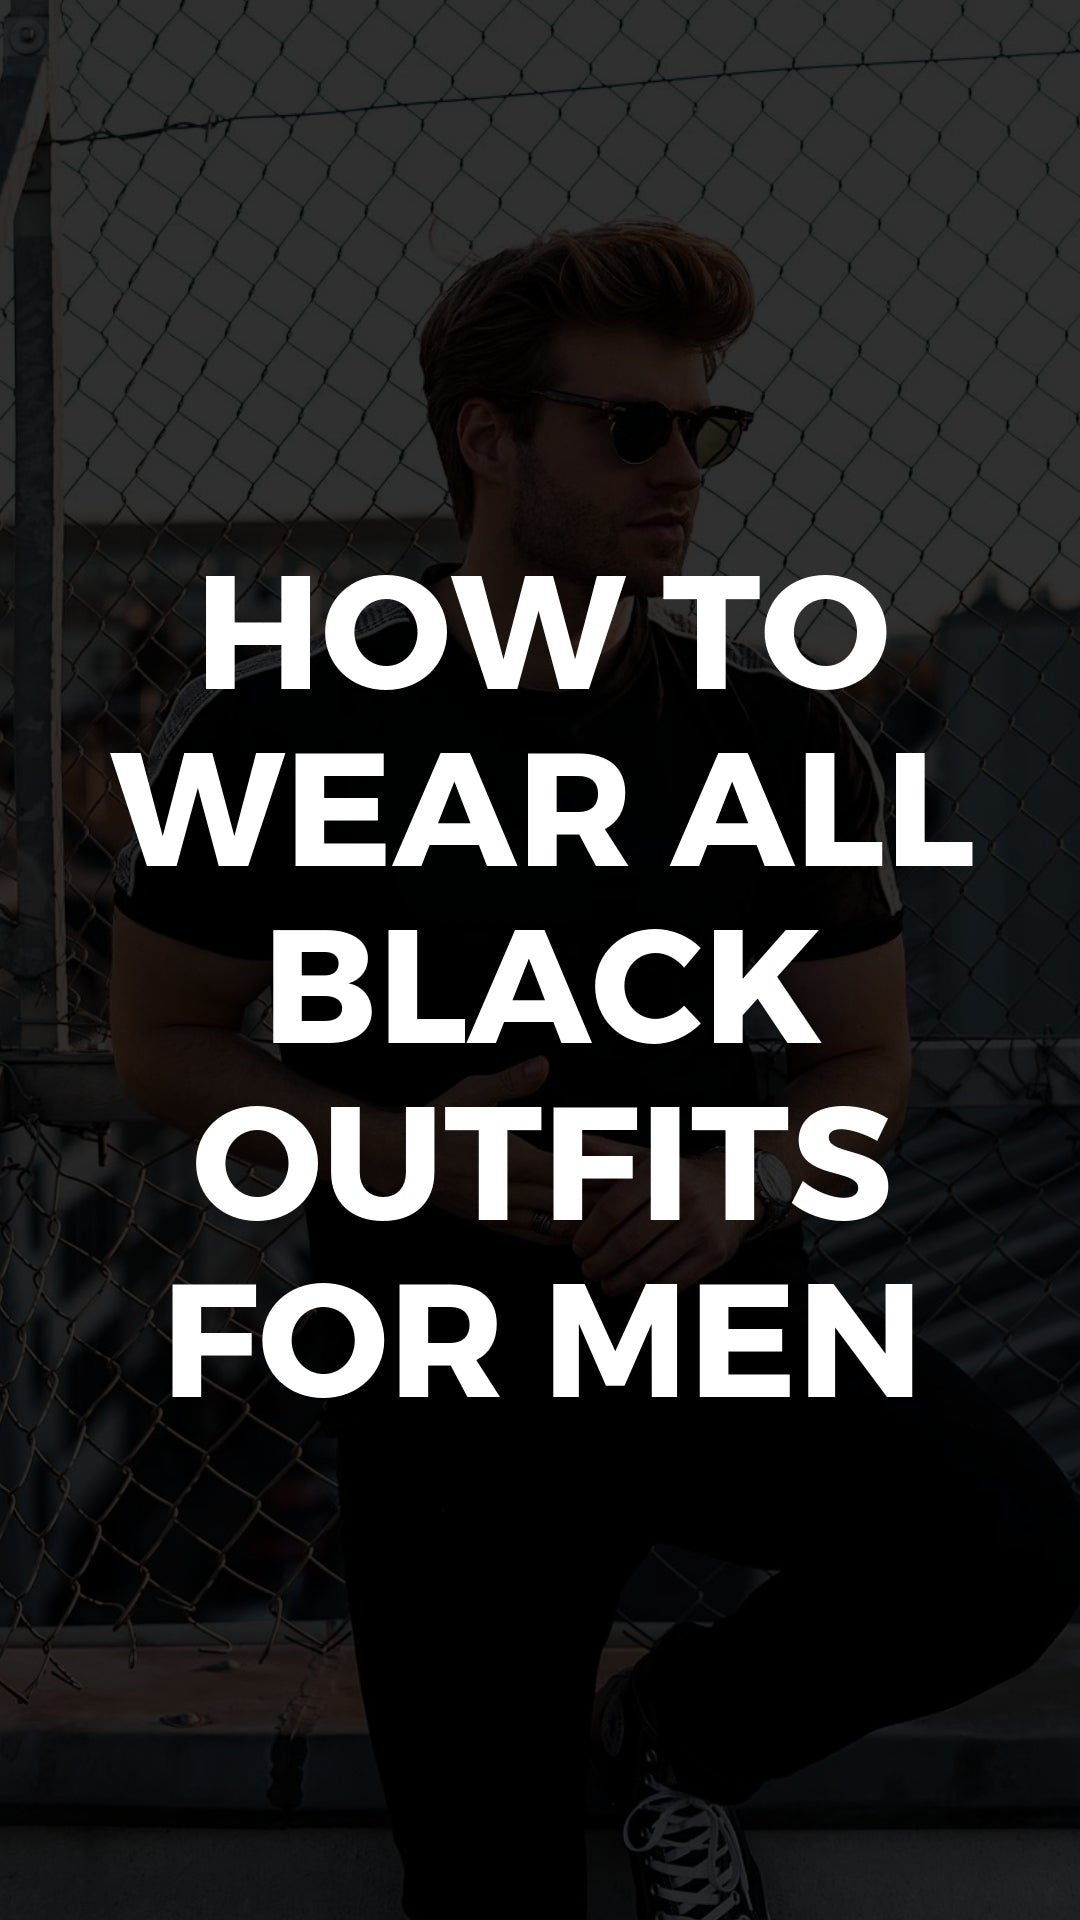 5 All Black Outfits For Men #allblack #outfits #mensfashion #streetstyle